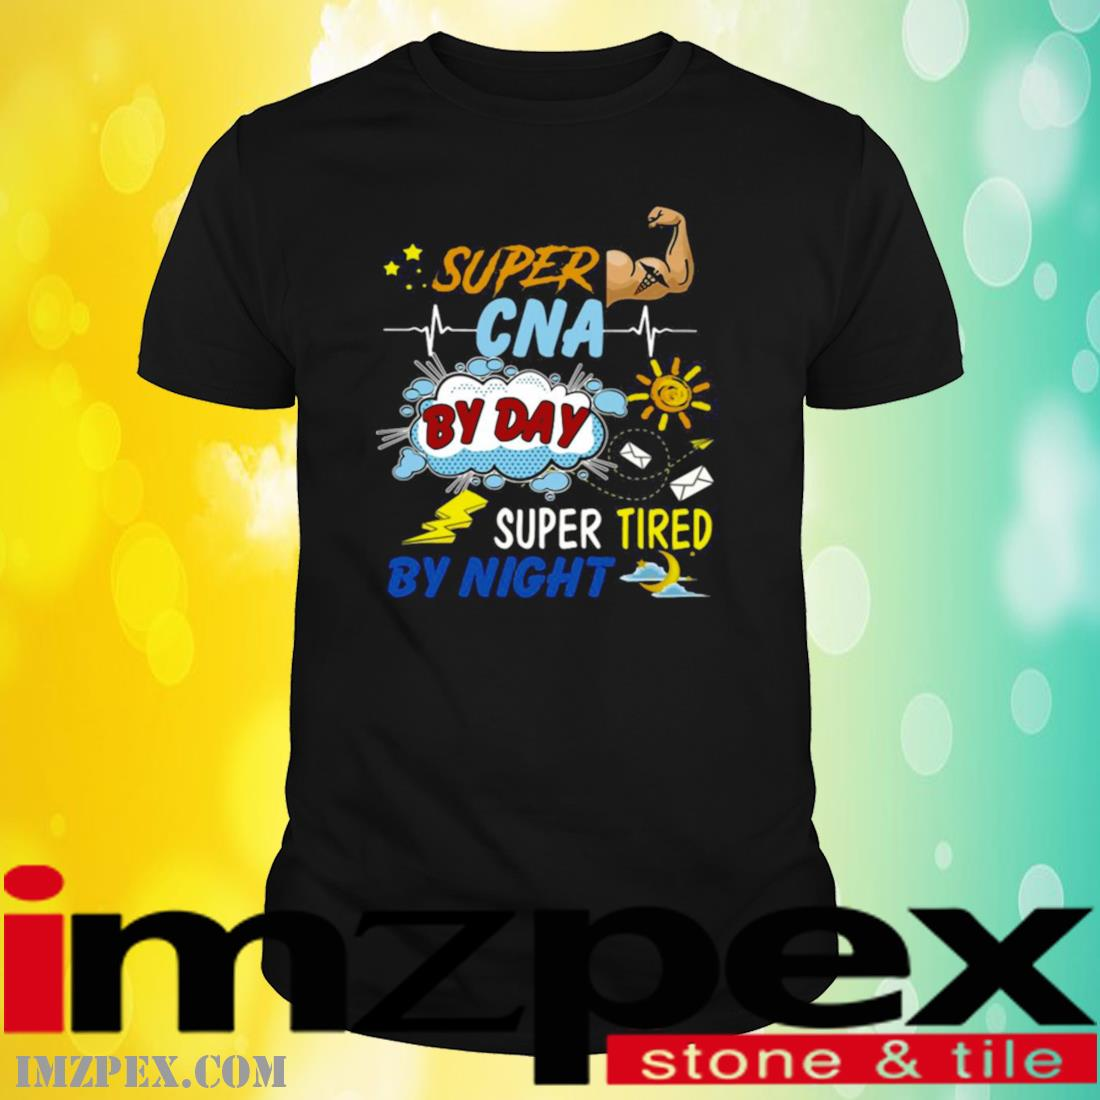 Super CNA By Day Super Tired By Night Shirt